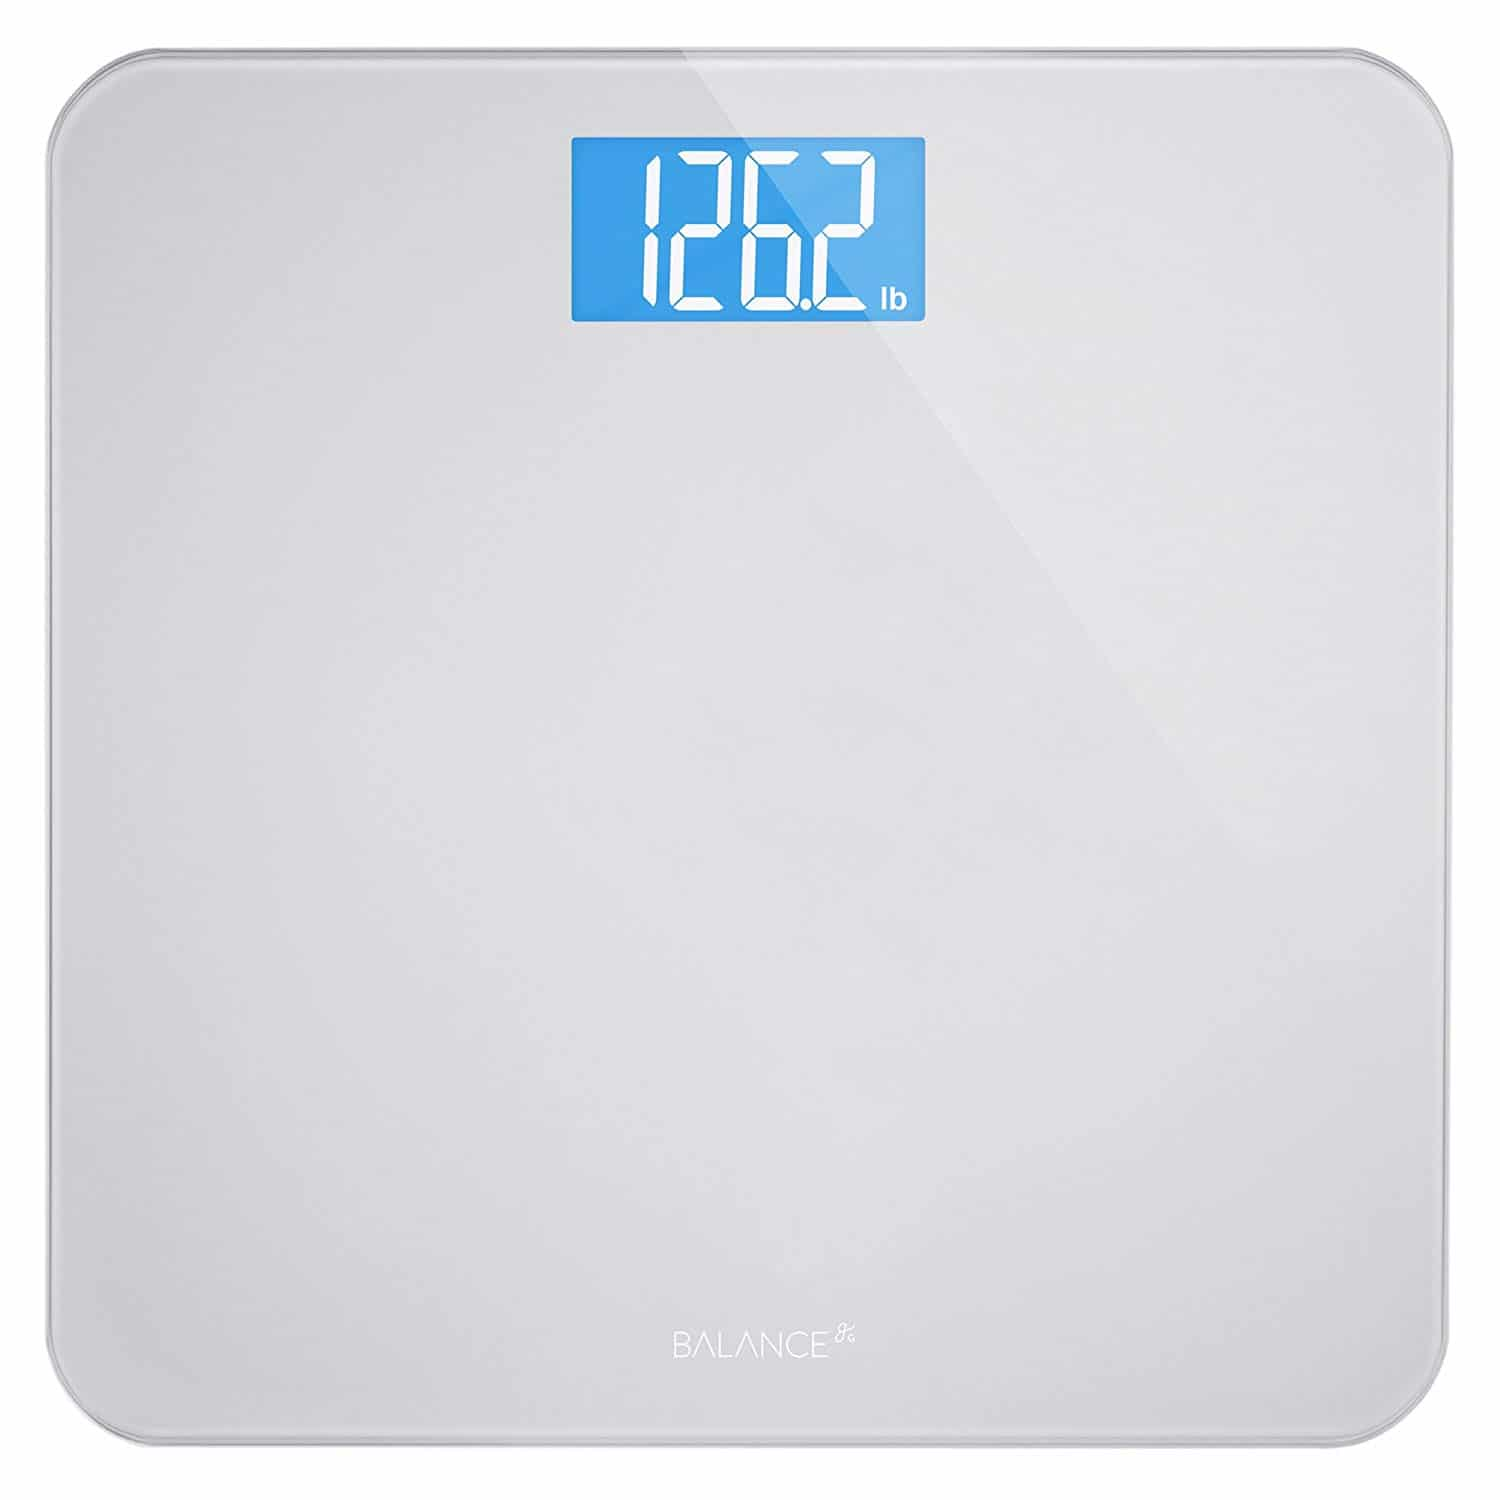 Accurate and best looking weight scale for bathroom